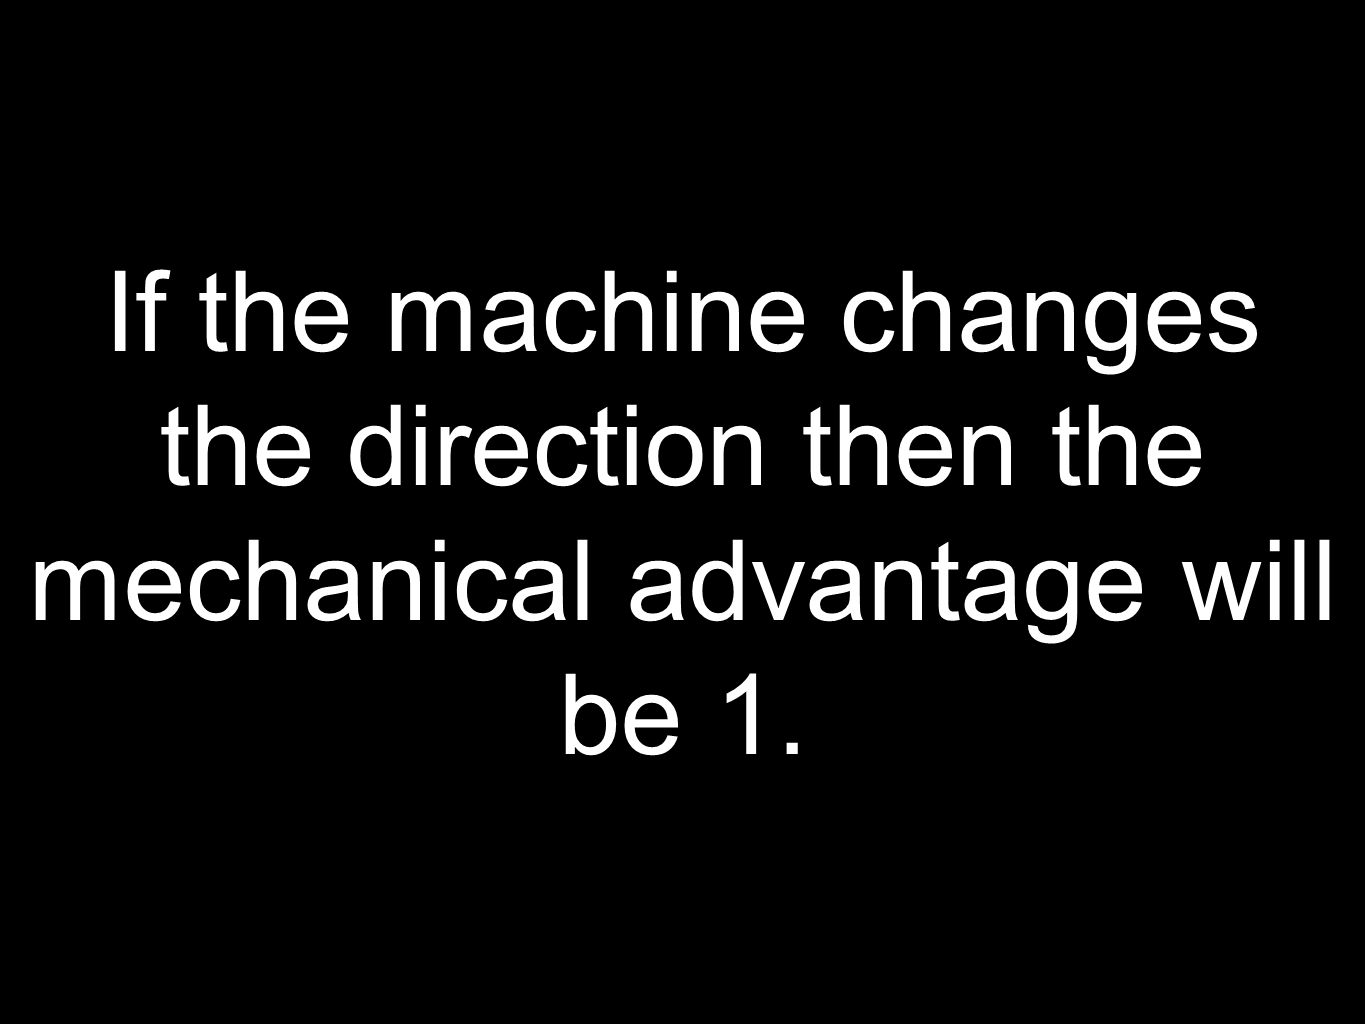 If the machine changes the direction then the mechanical advantage will be 1.